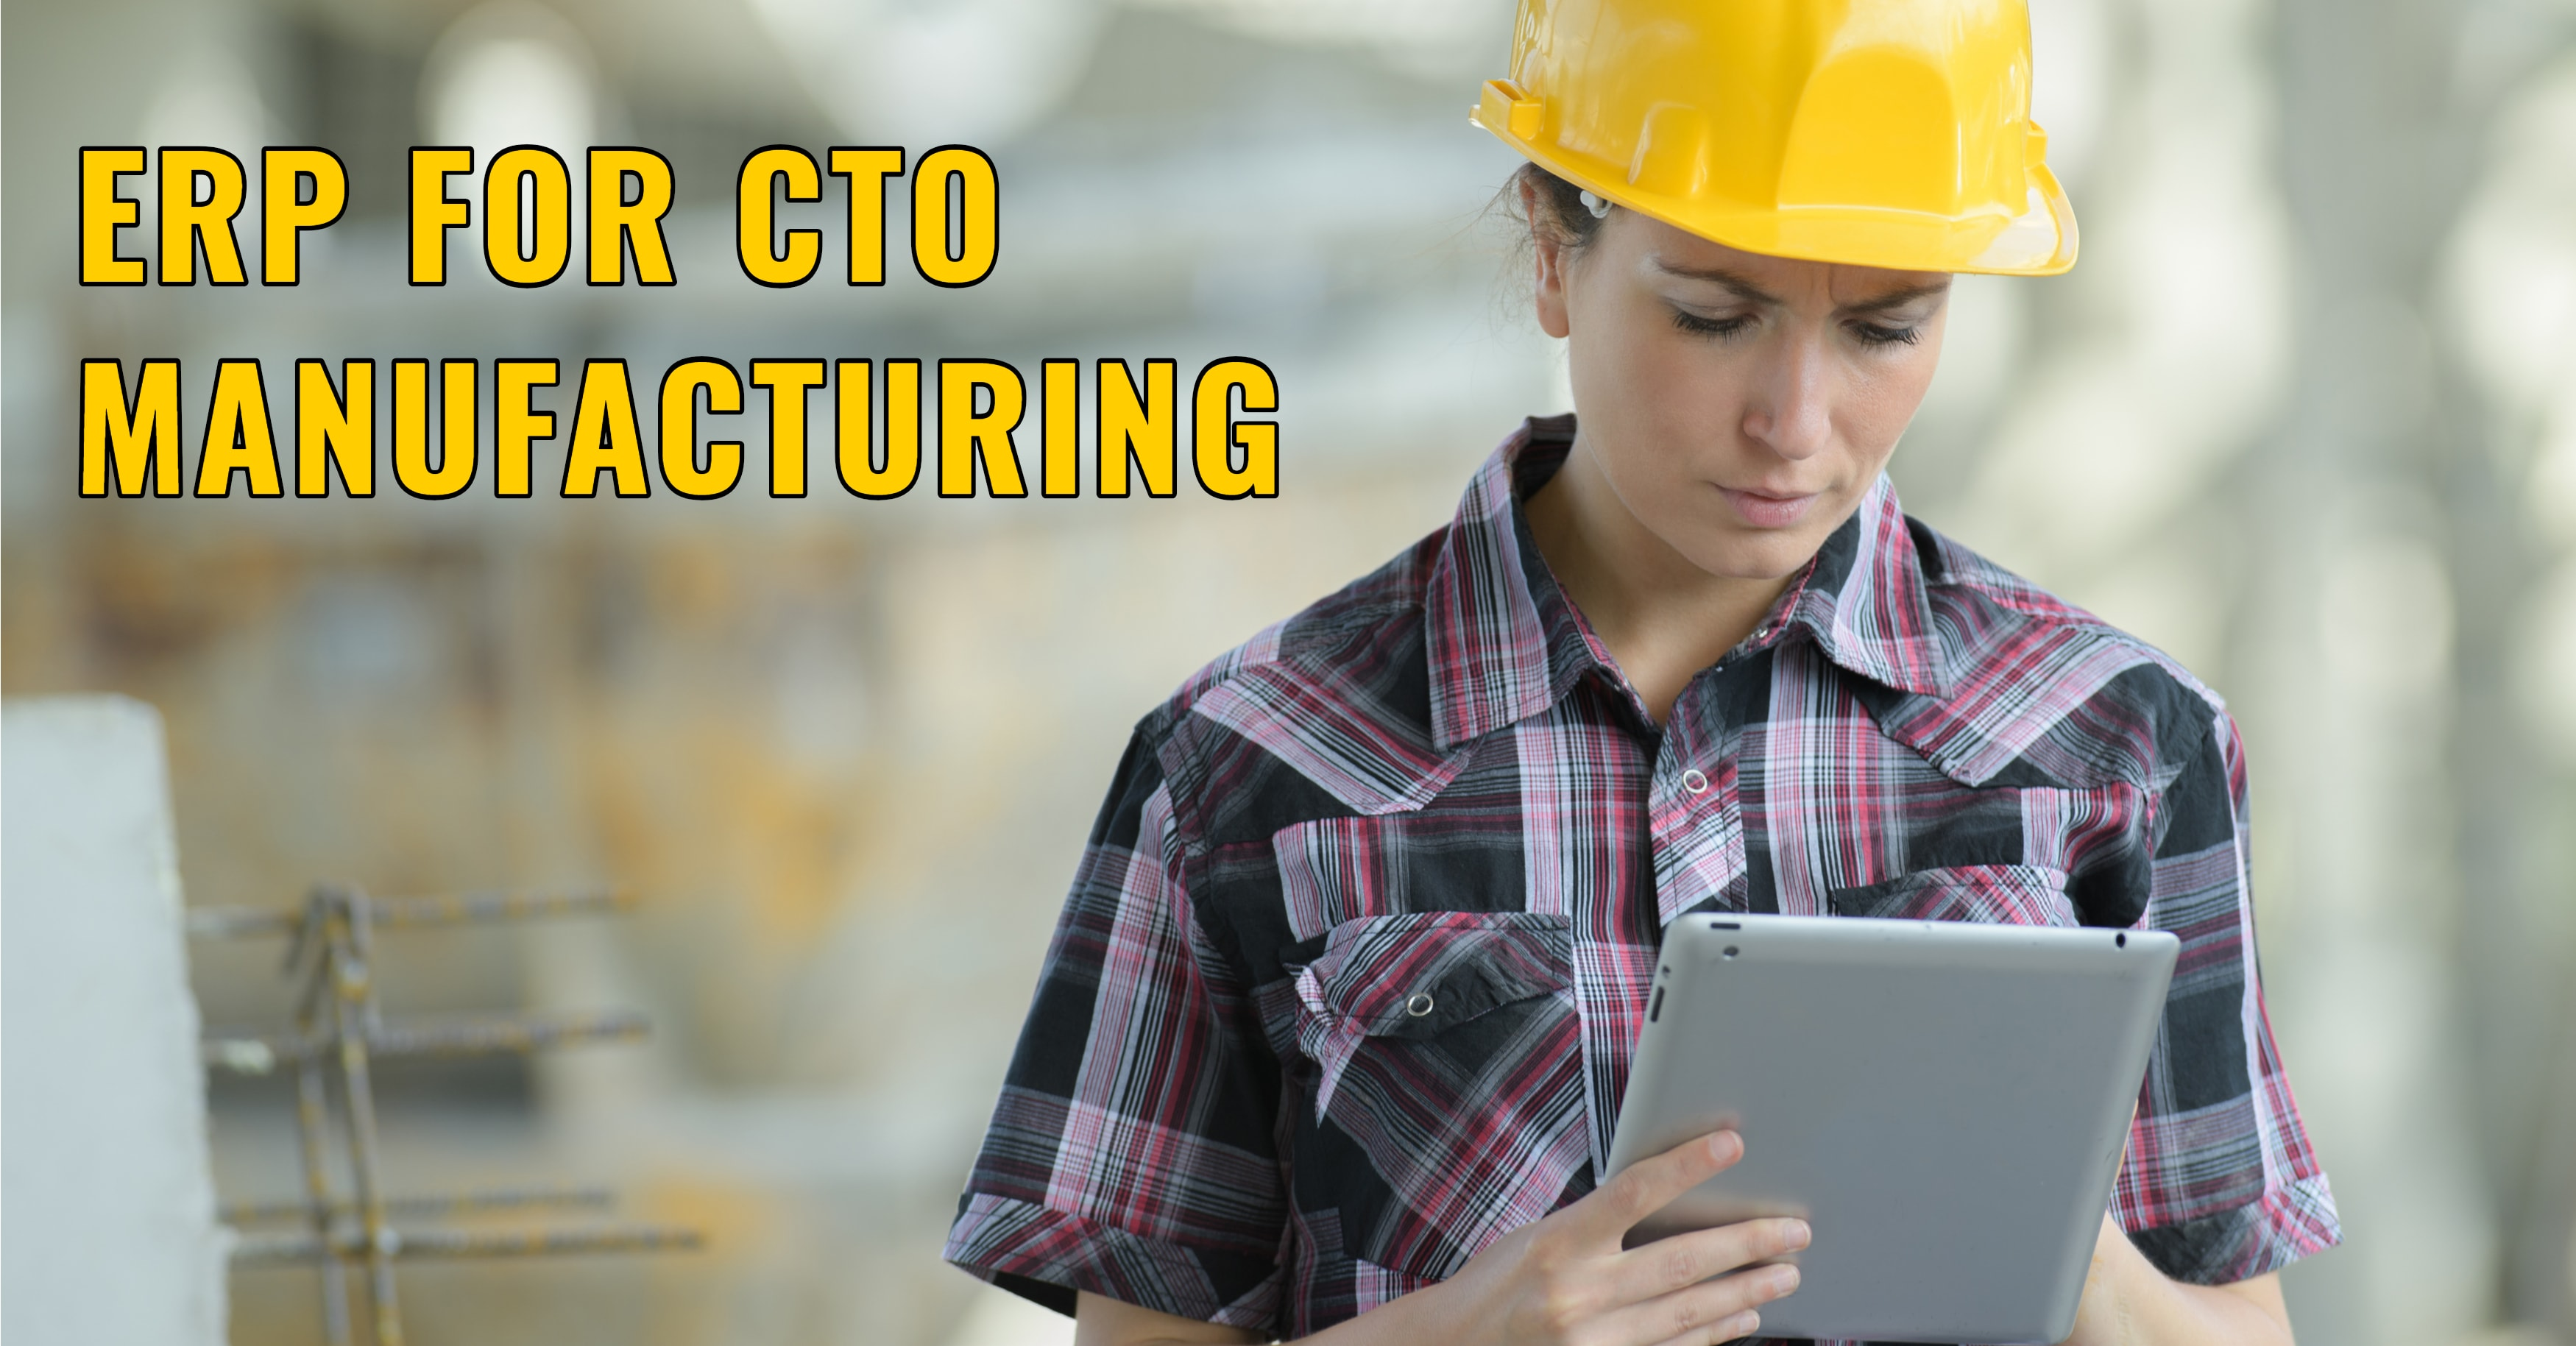 ERP CTO Manufacturing